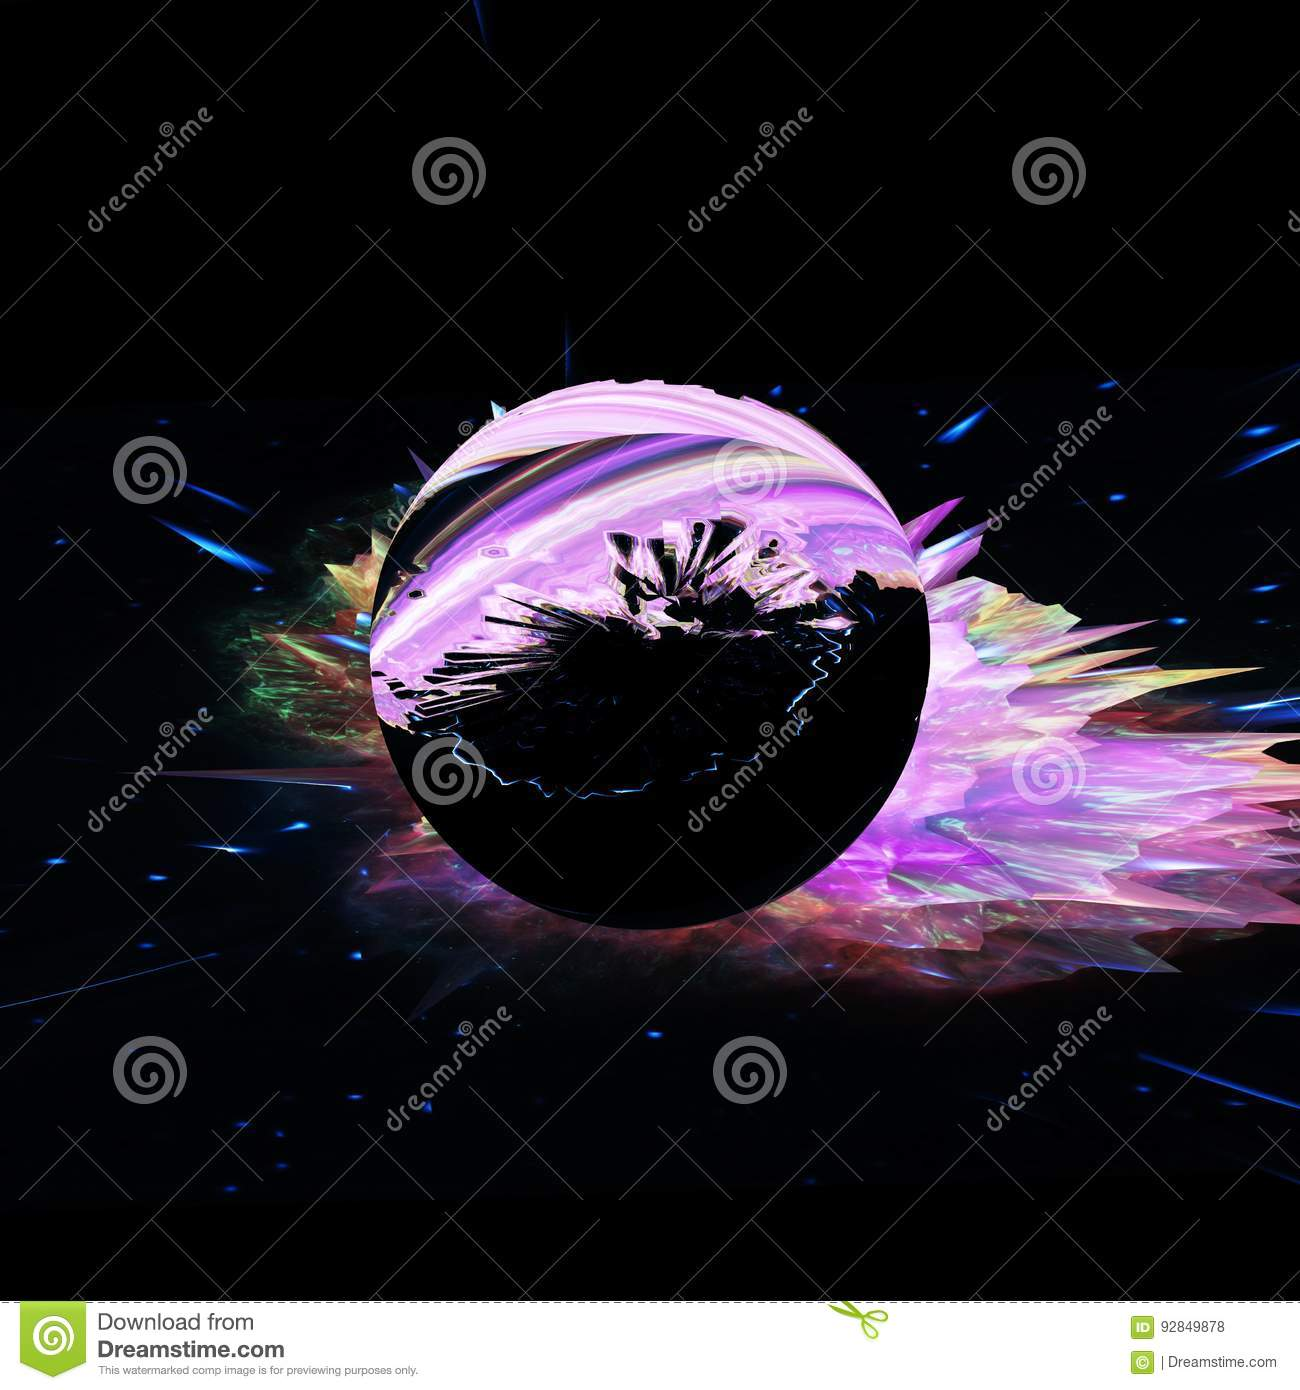 Energy ball sound effect download